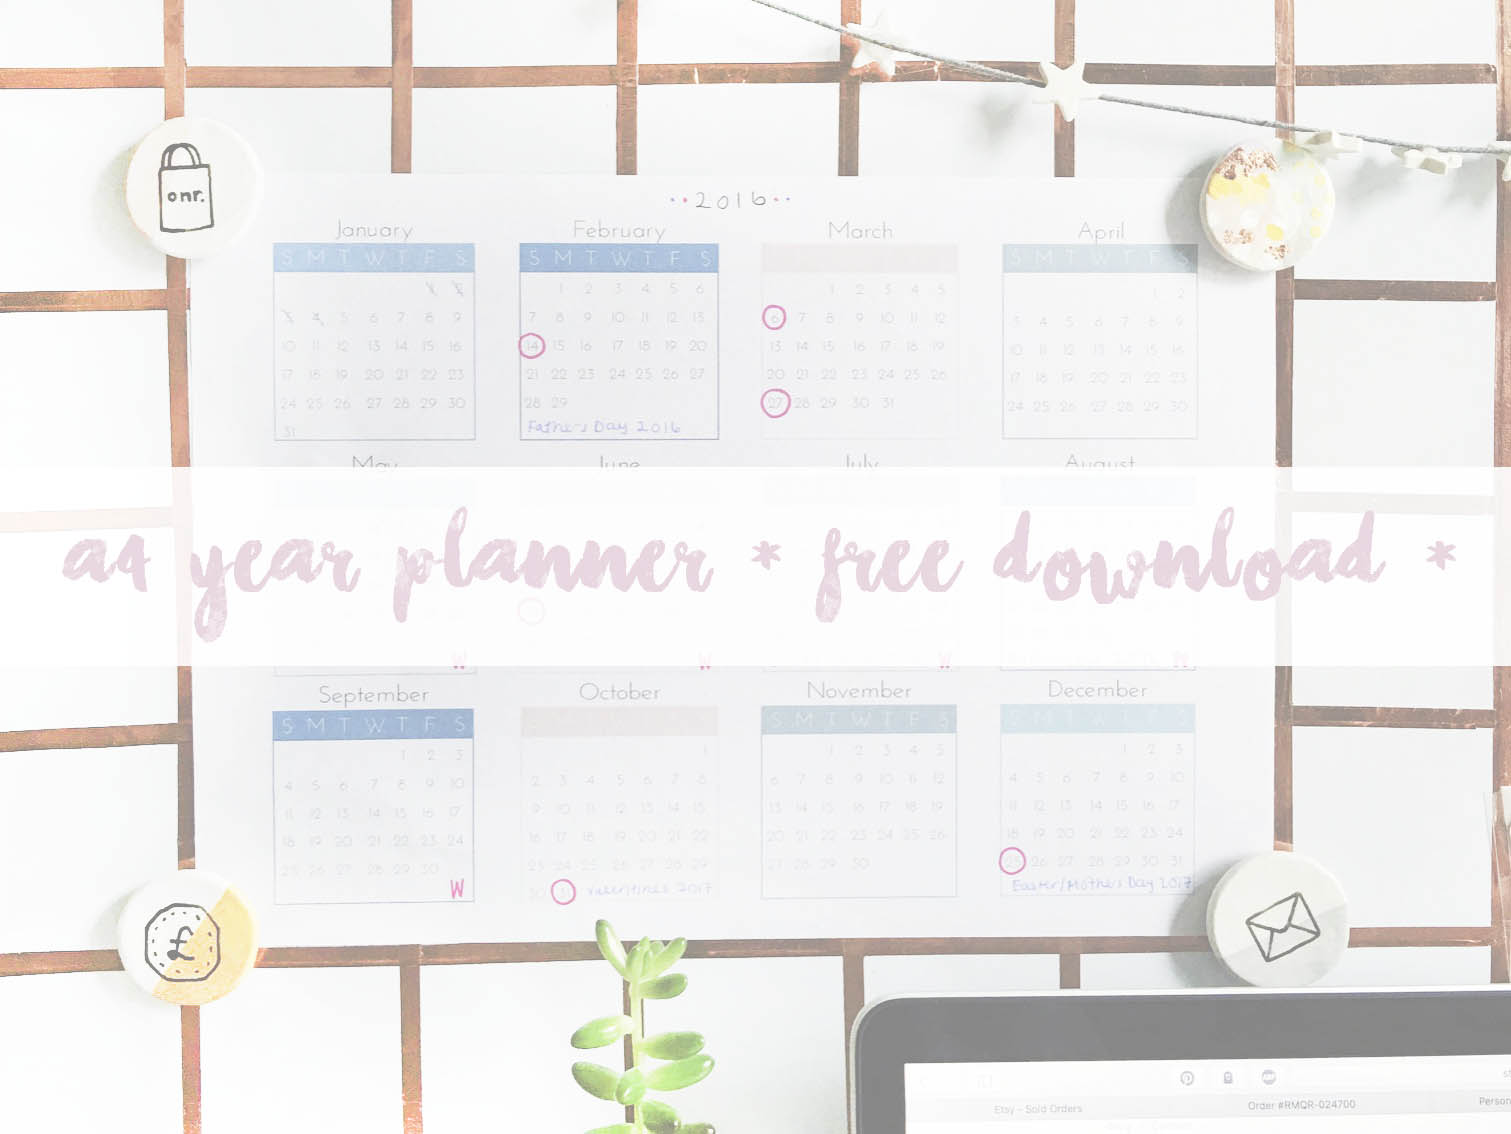 ohnorachio - free downloadable A4 2016 Year Planner